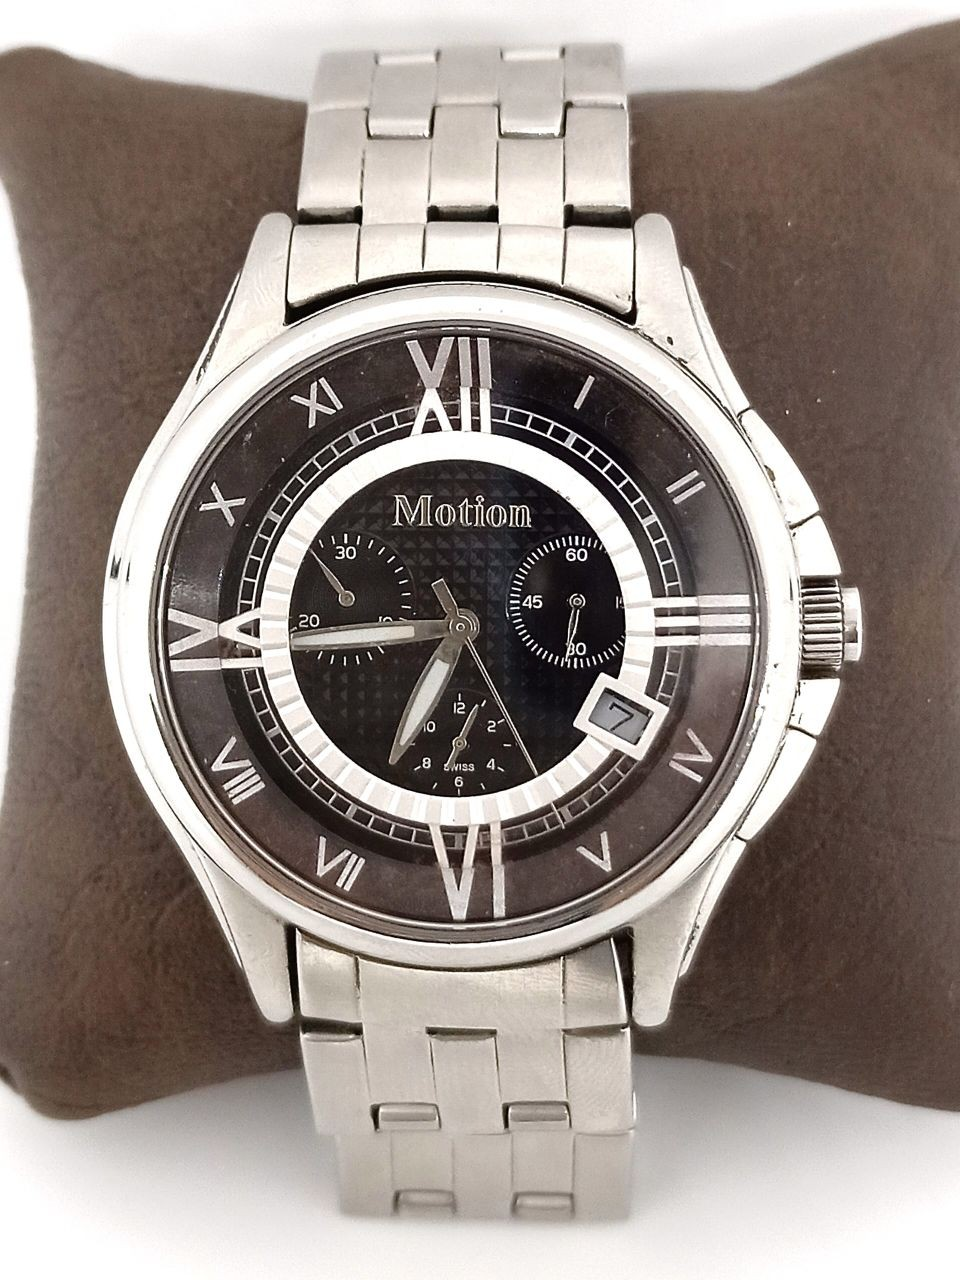 Motion chronograph watch